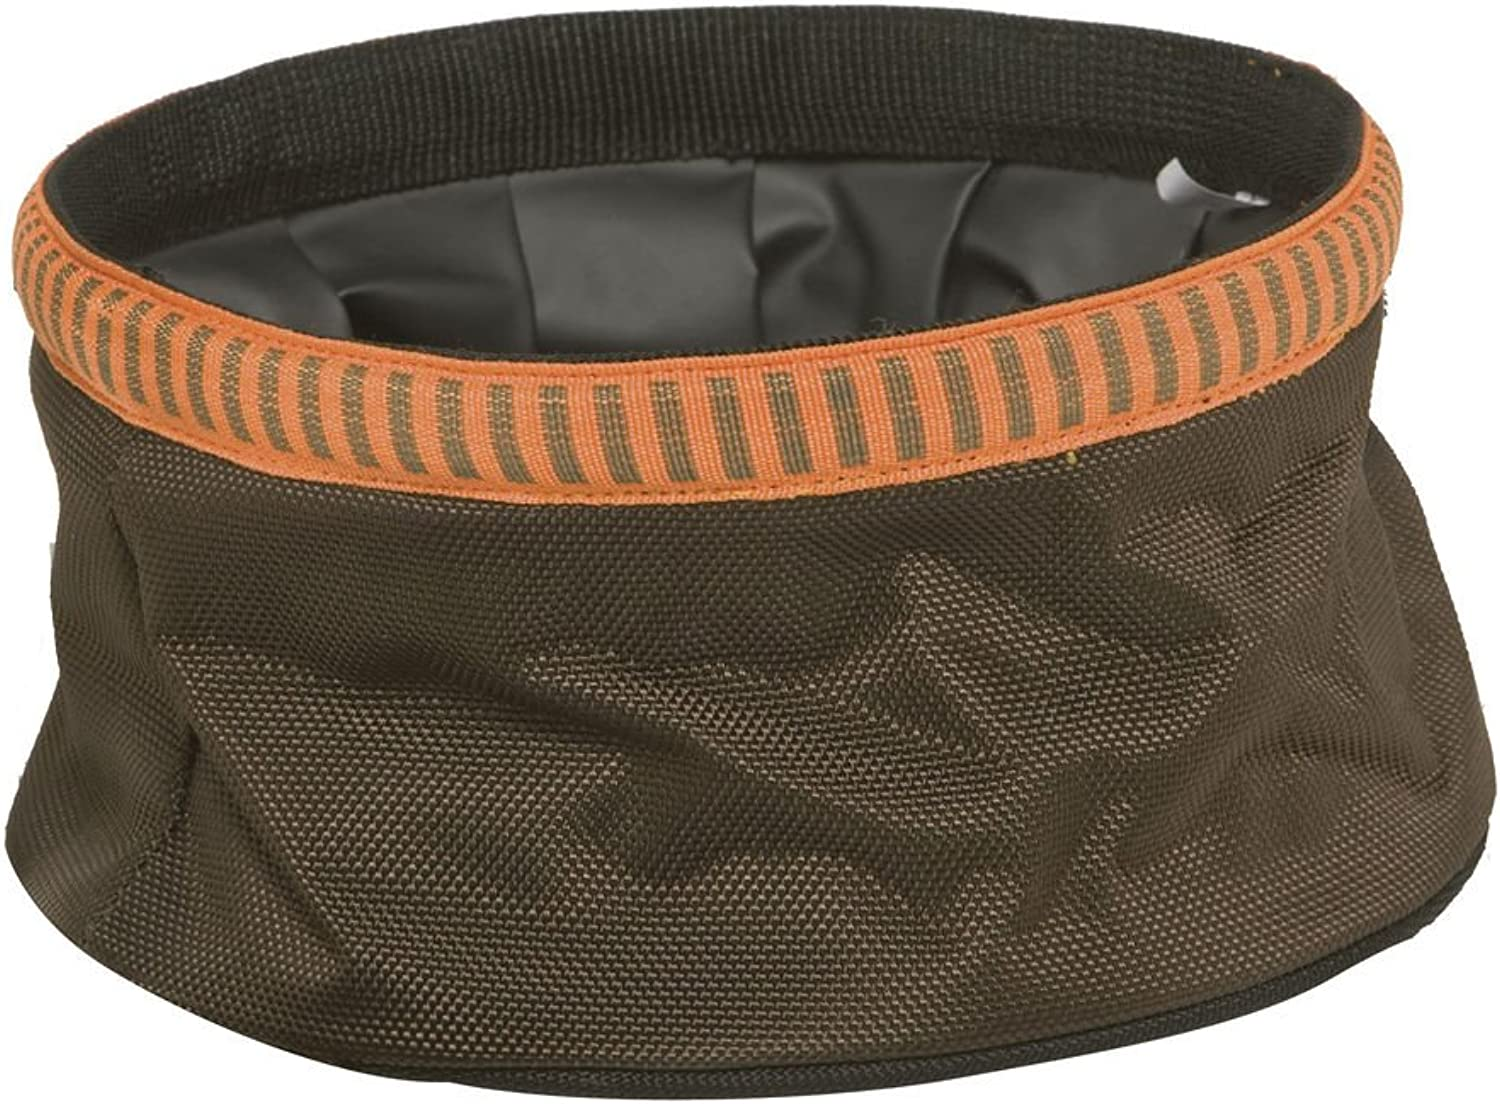 Mud River The Quick Quack Dog Bowl, Brown